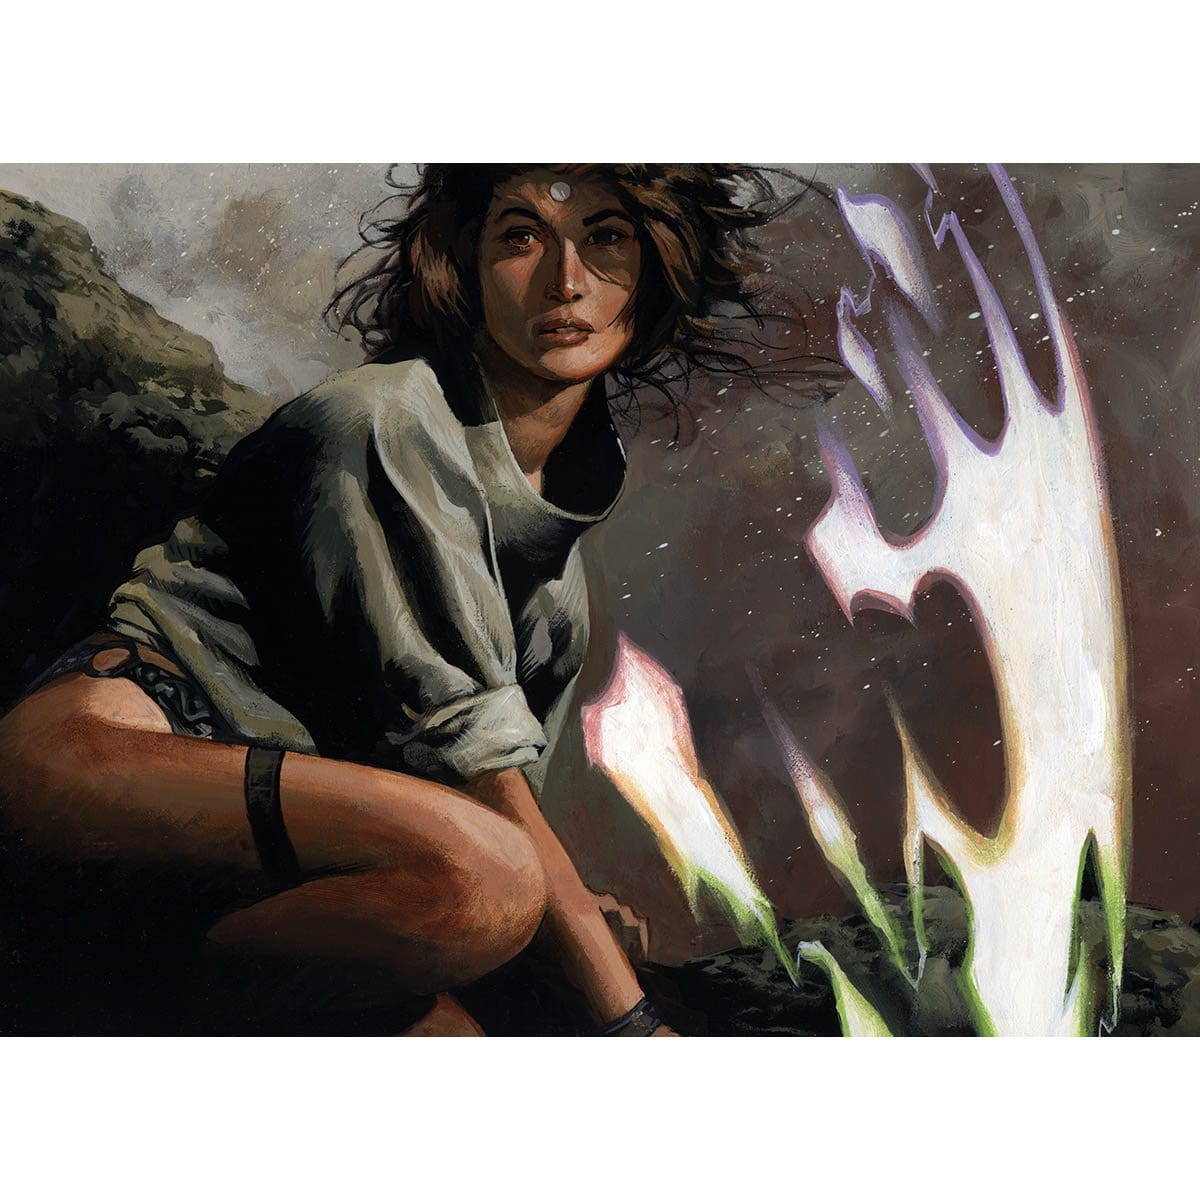 Shelter Print - Print - Original Magic Art - Accessories for Magic the Gathering and other card games